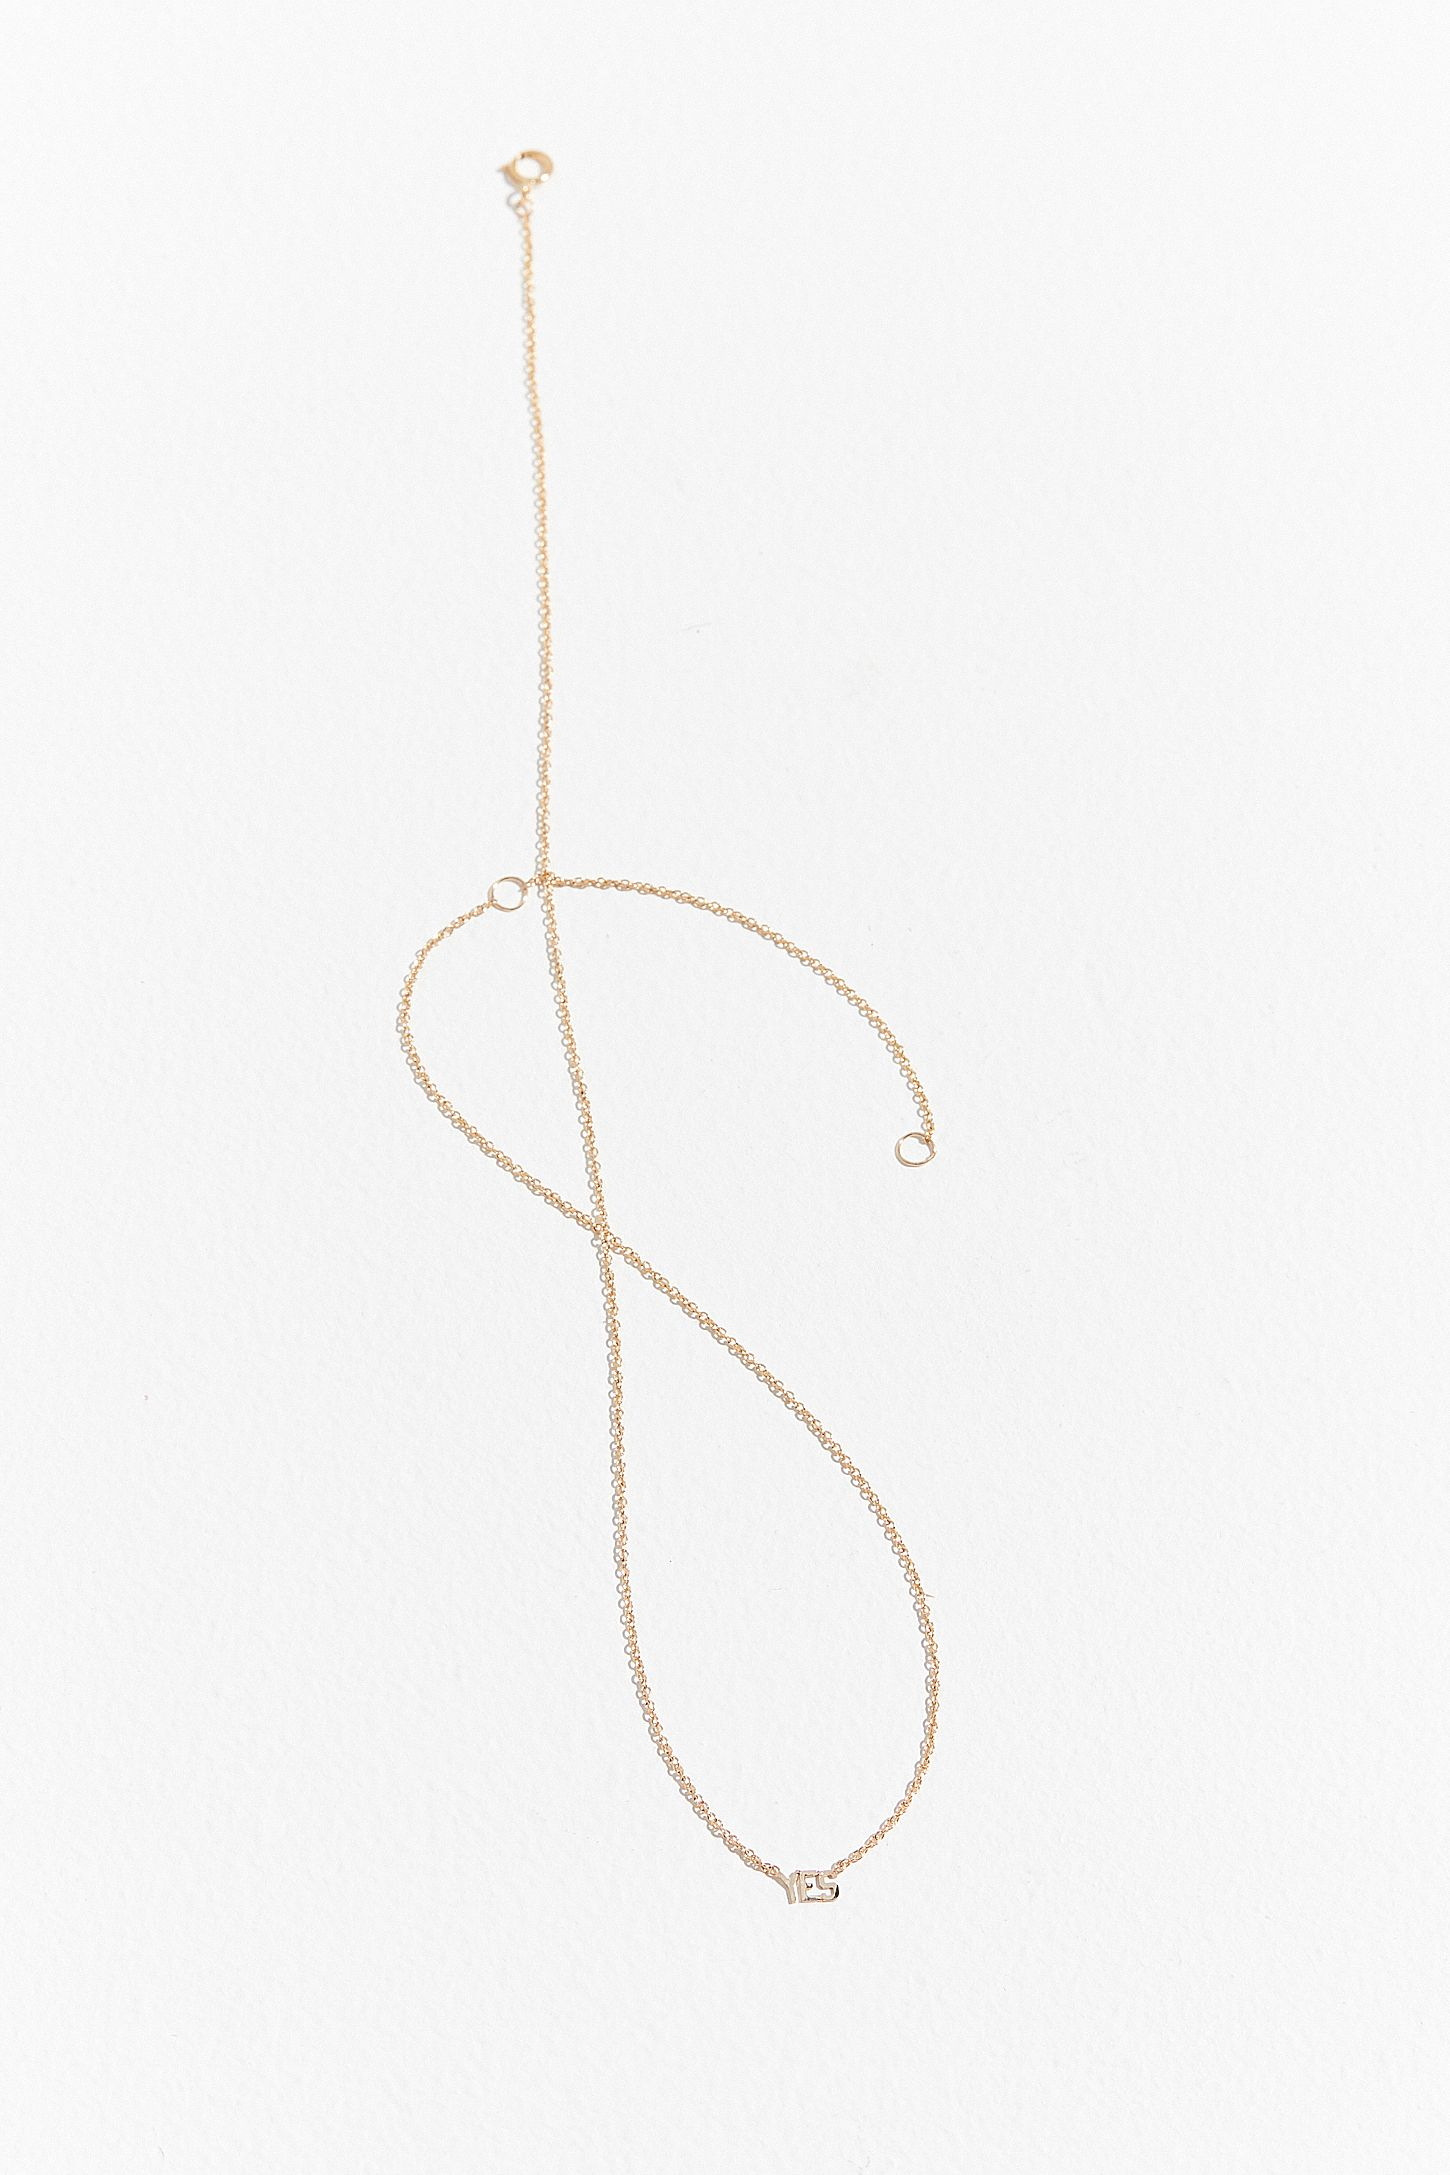 brenner gold mbd befd necklace letter products maya